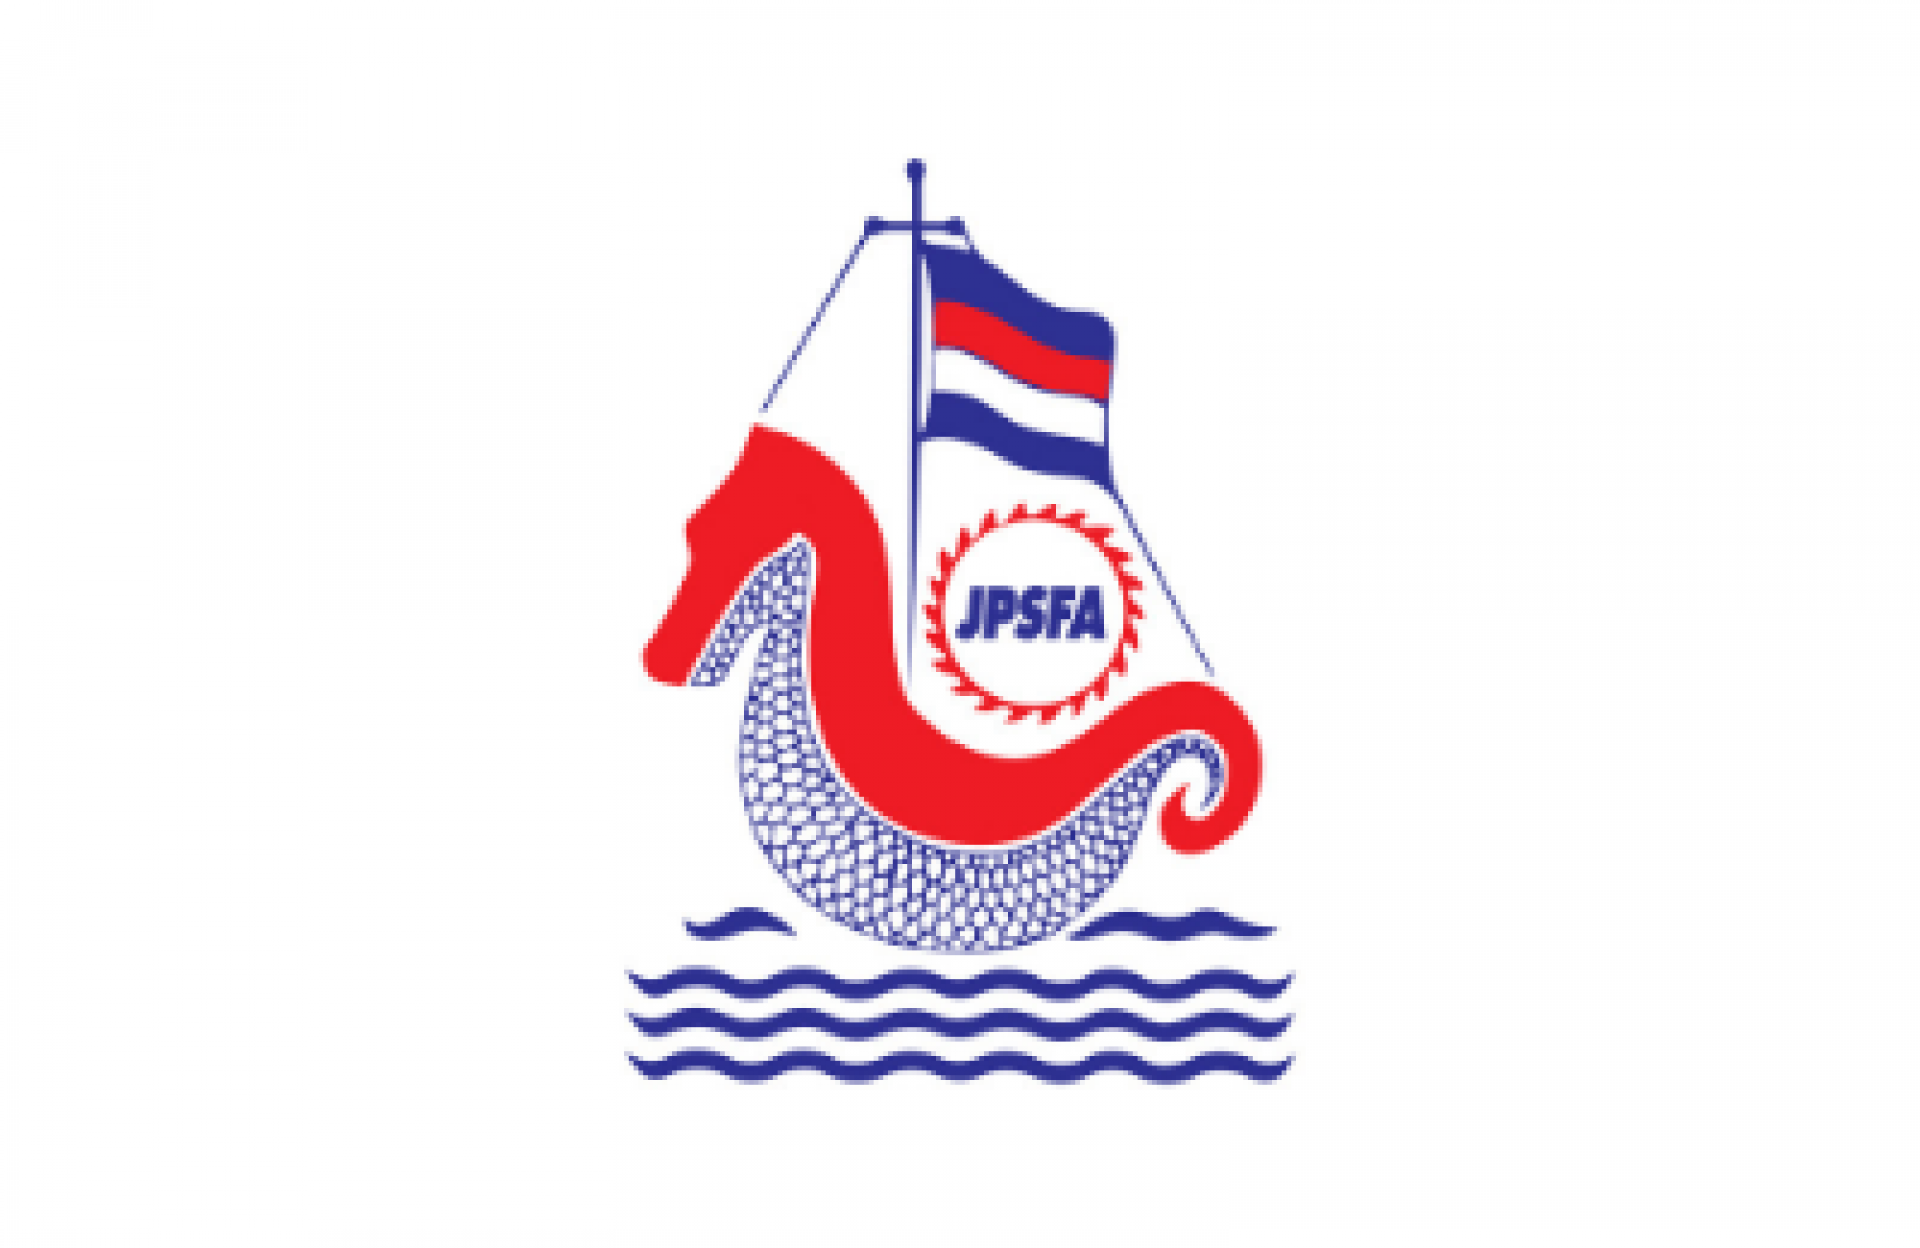 Johor Ports Shipping & Forwarding Association